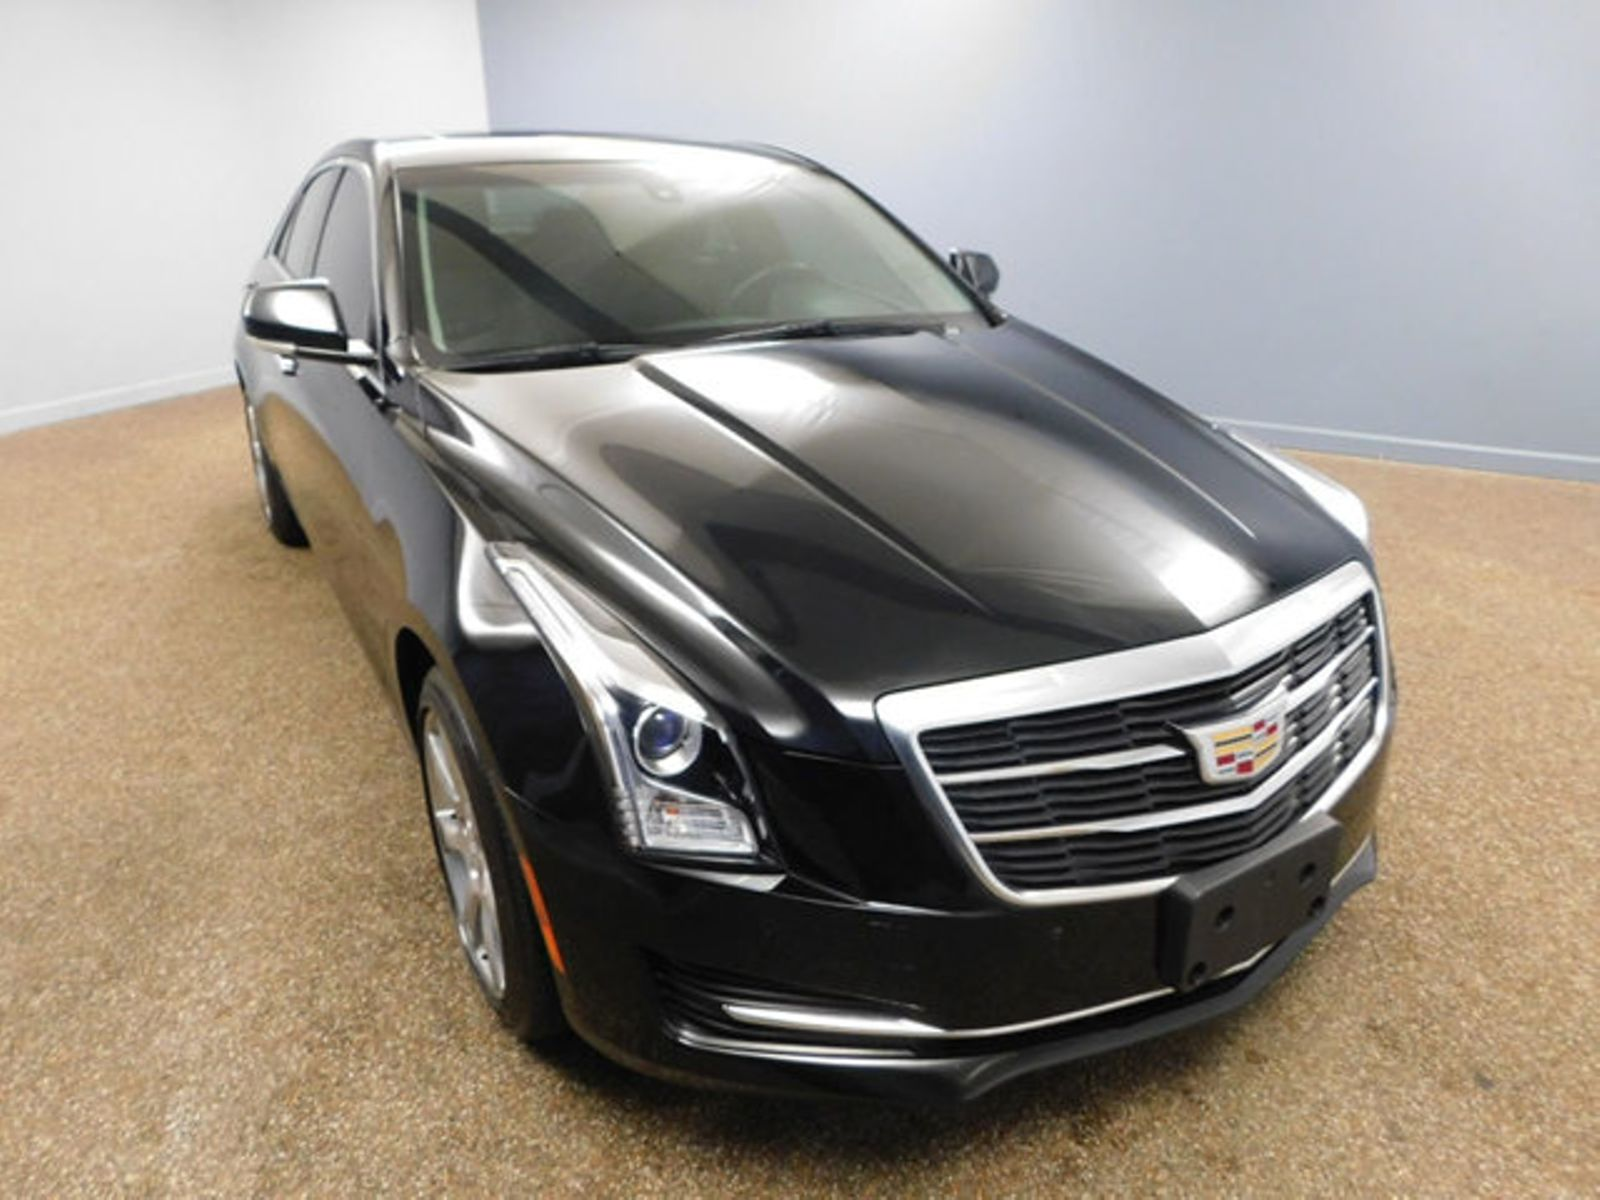 and be guaranteed cadillac pinterest sedan pin on because through coupe history gm today actually powerful appears ats marketplace producing prior to effect